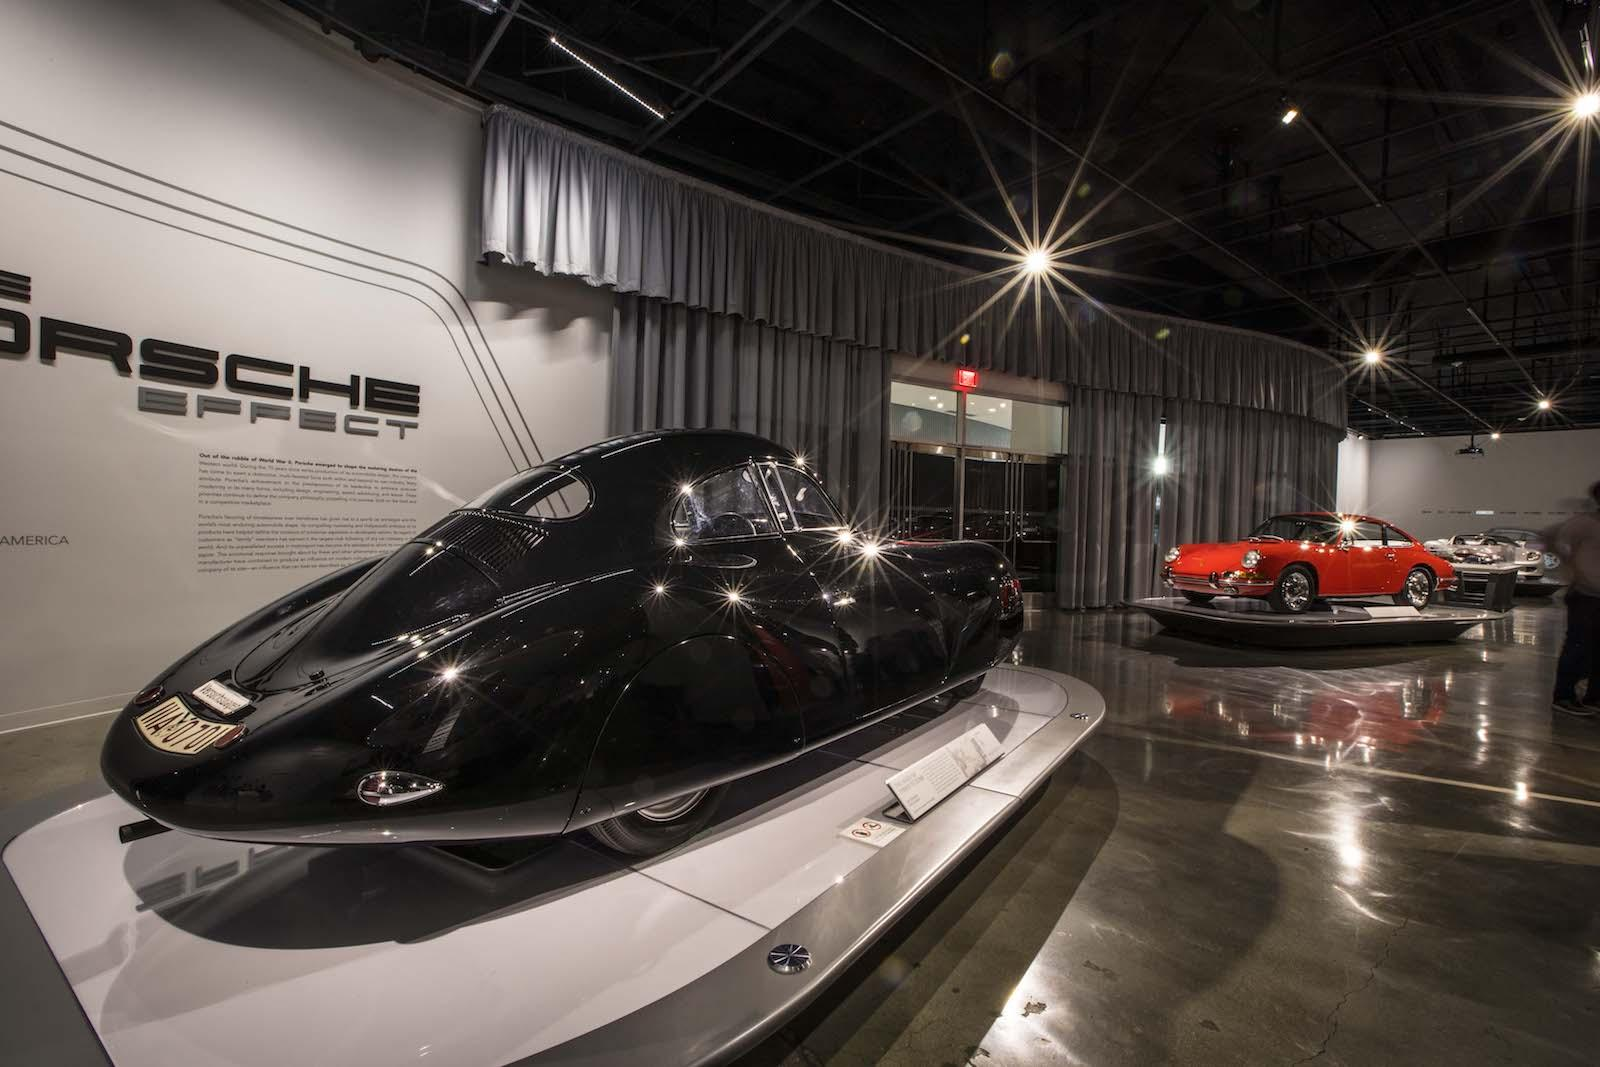 Is this the greatest collection of Porsches ever seen?